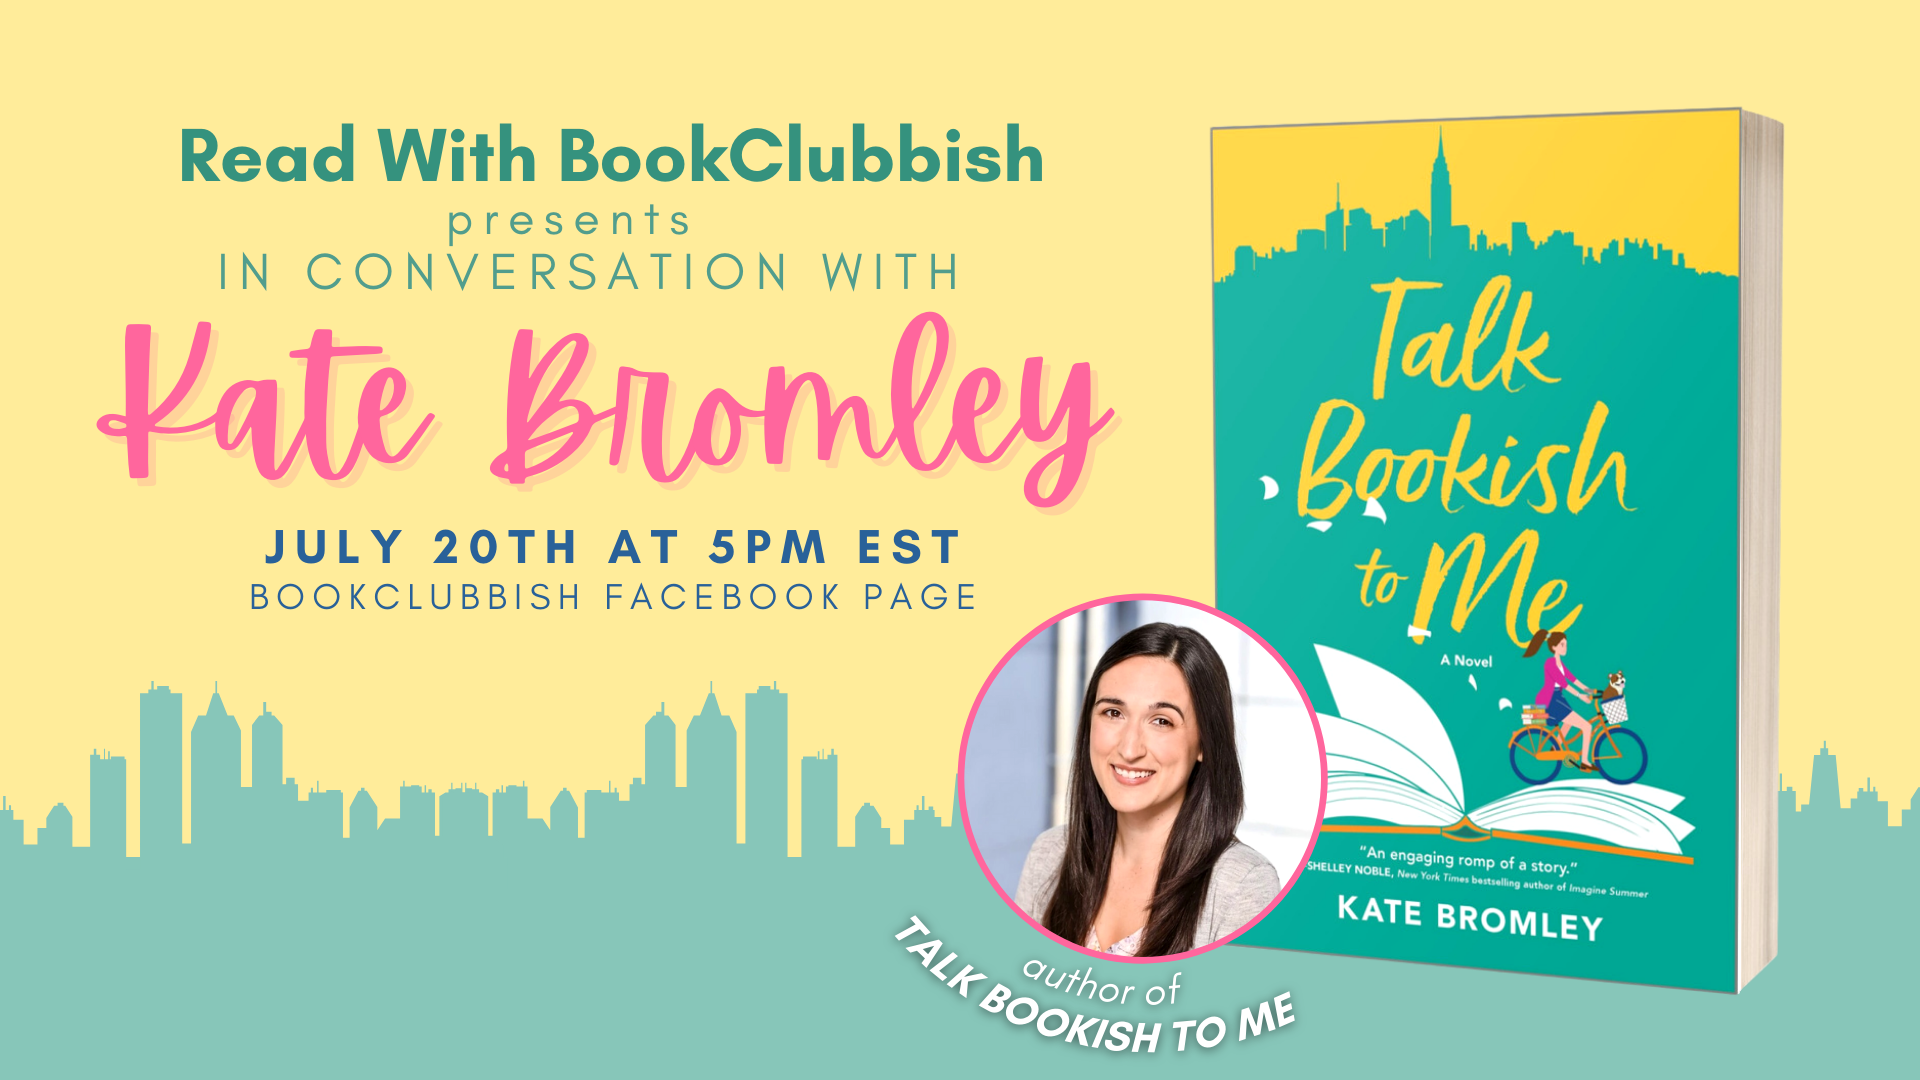 Read With BookClubbish Presents: In Conversation with Kate Bromley on uly 20th at 5:00 PM EST